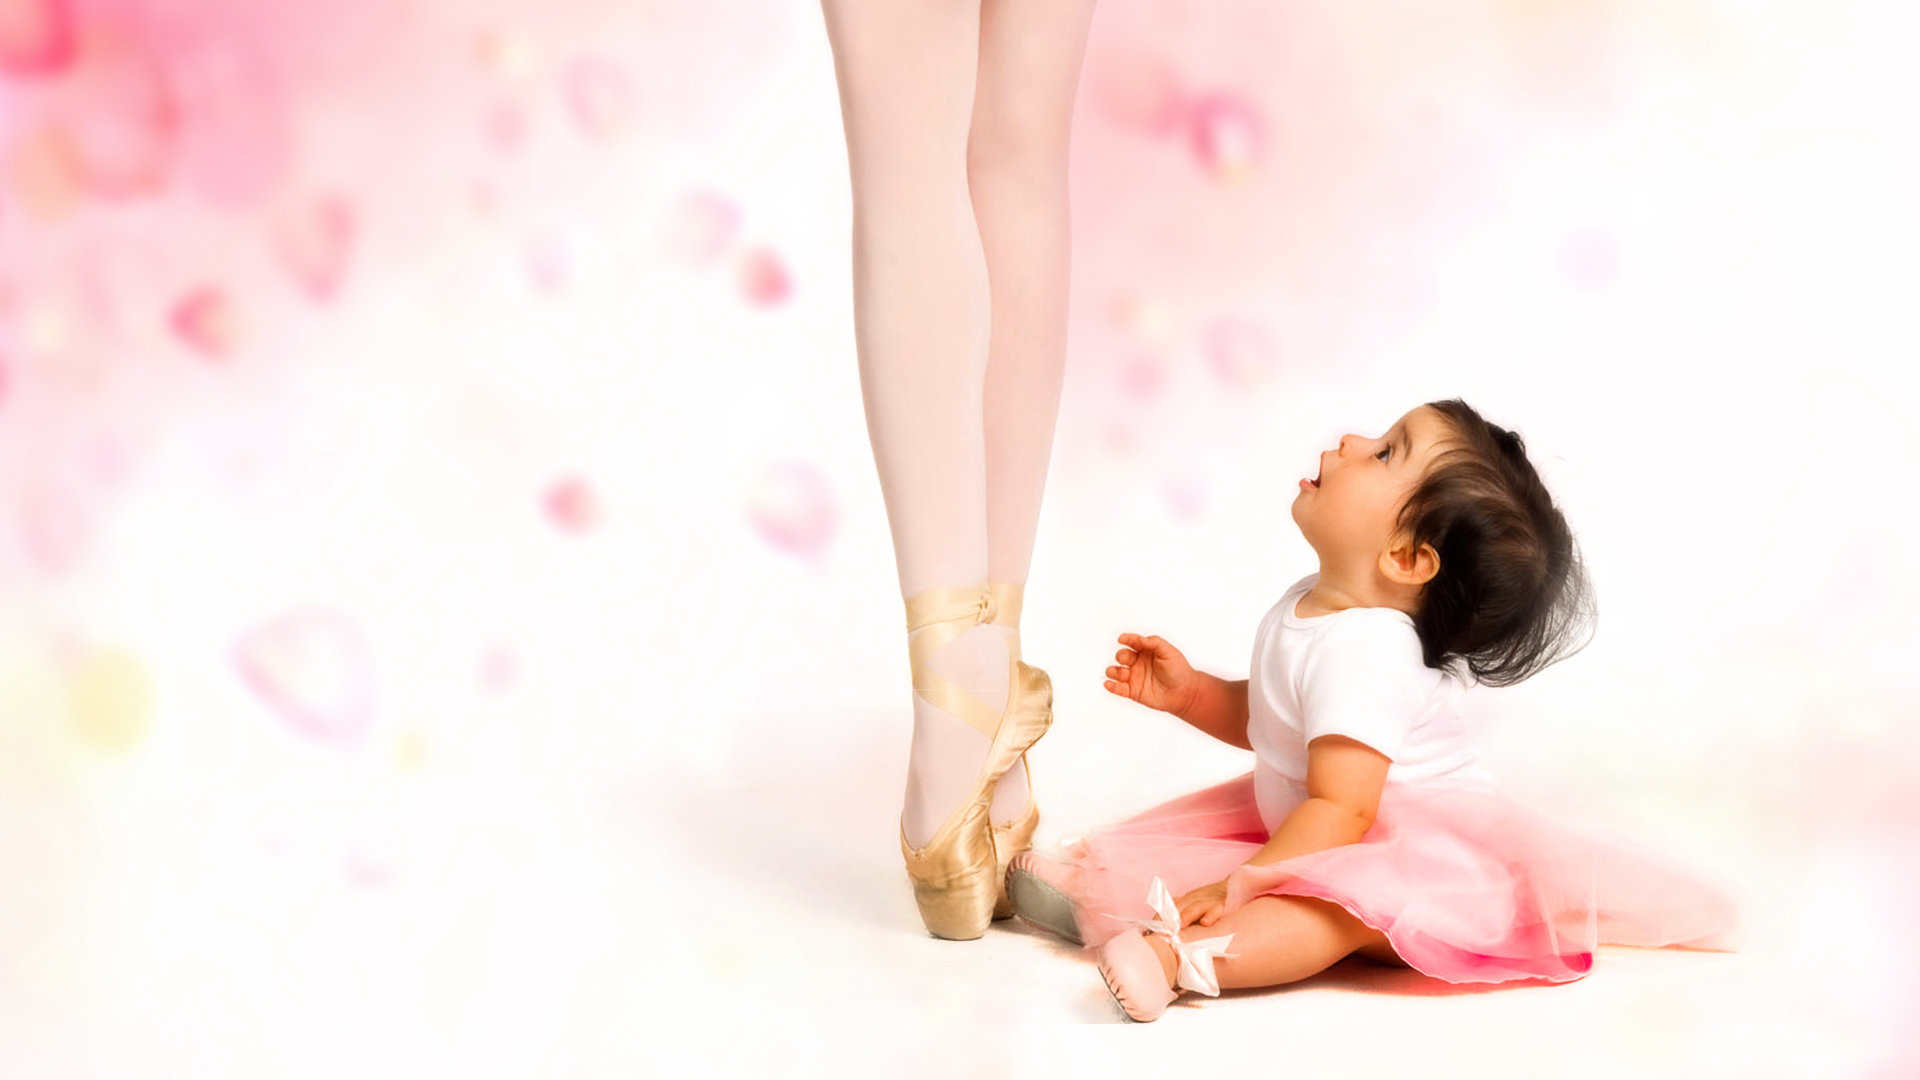 Ballerina Wallpapers 1920x1080 Full Hd 1080p Desktop Backgrounds